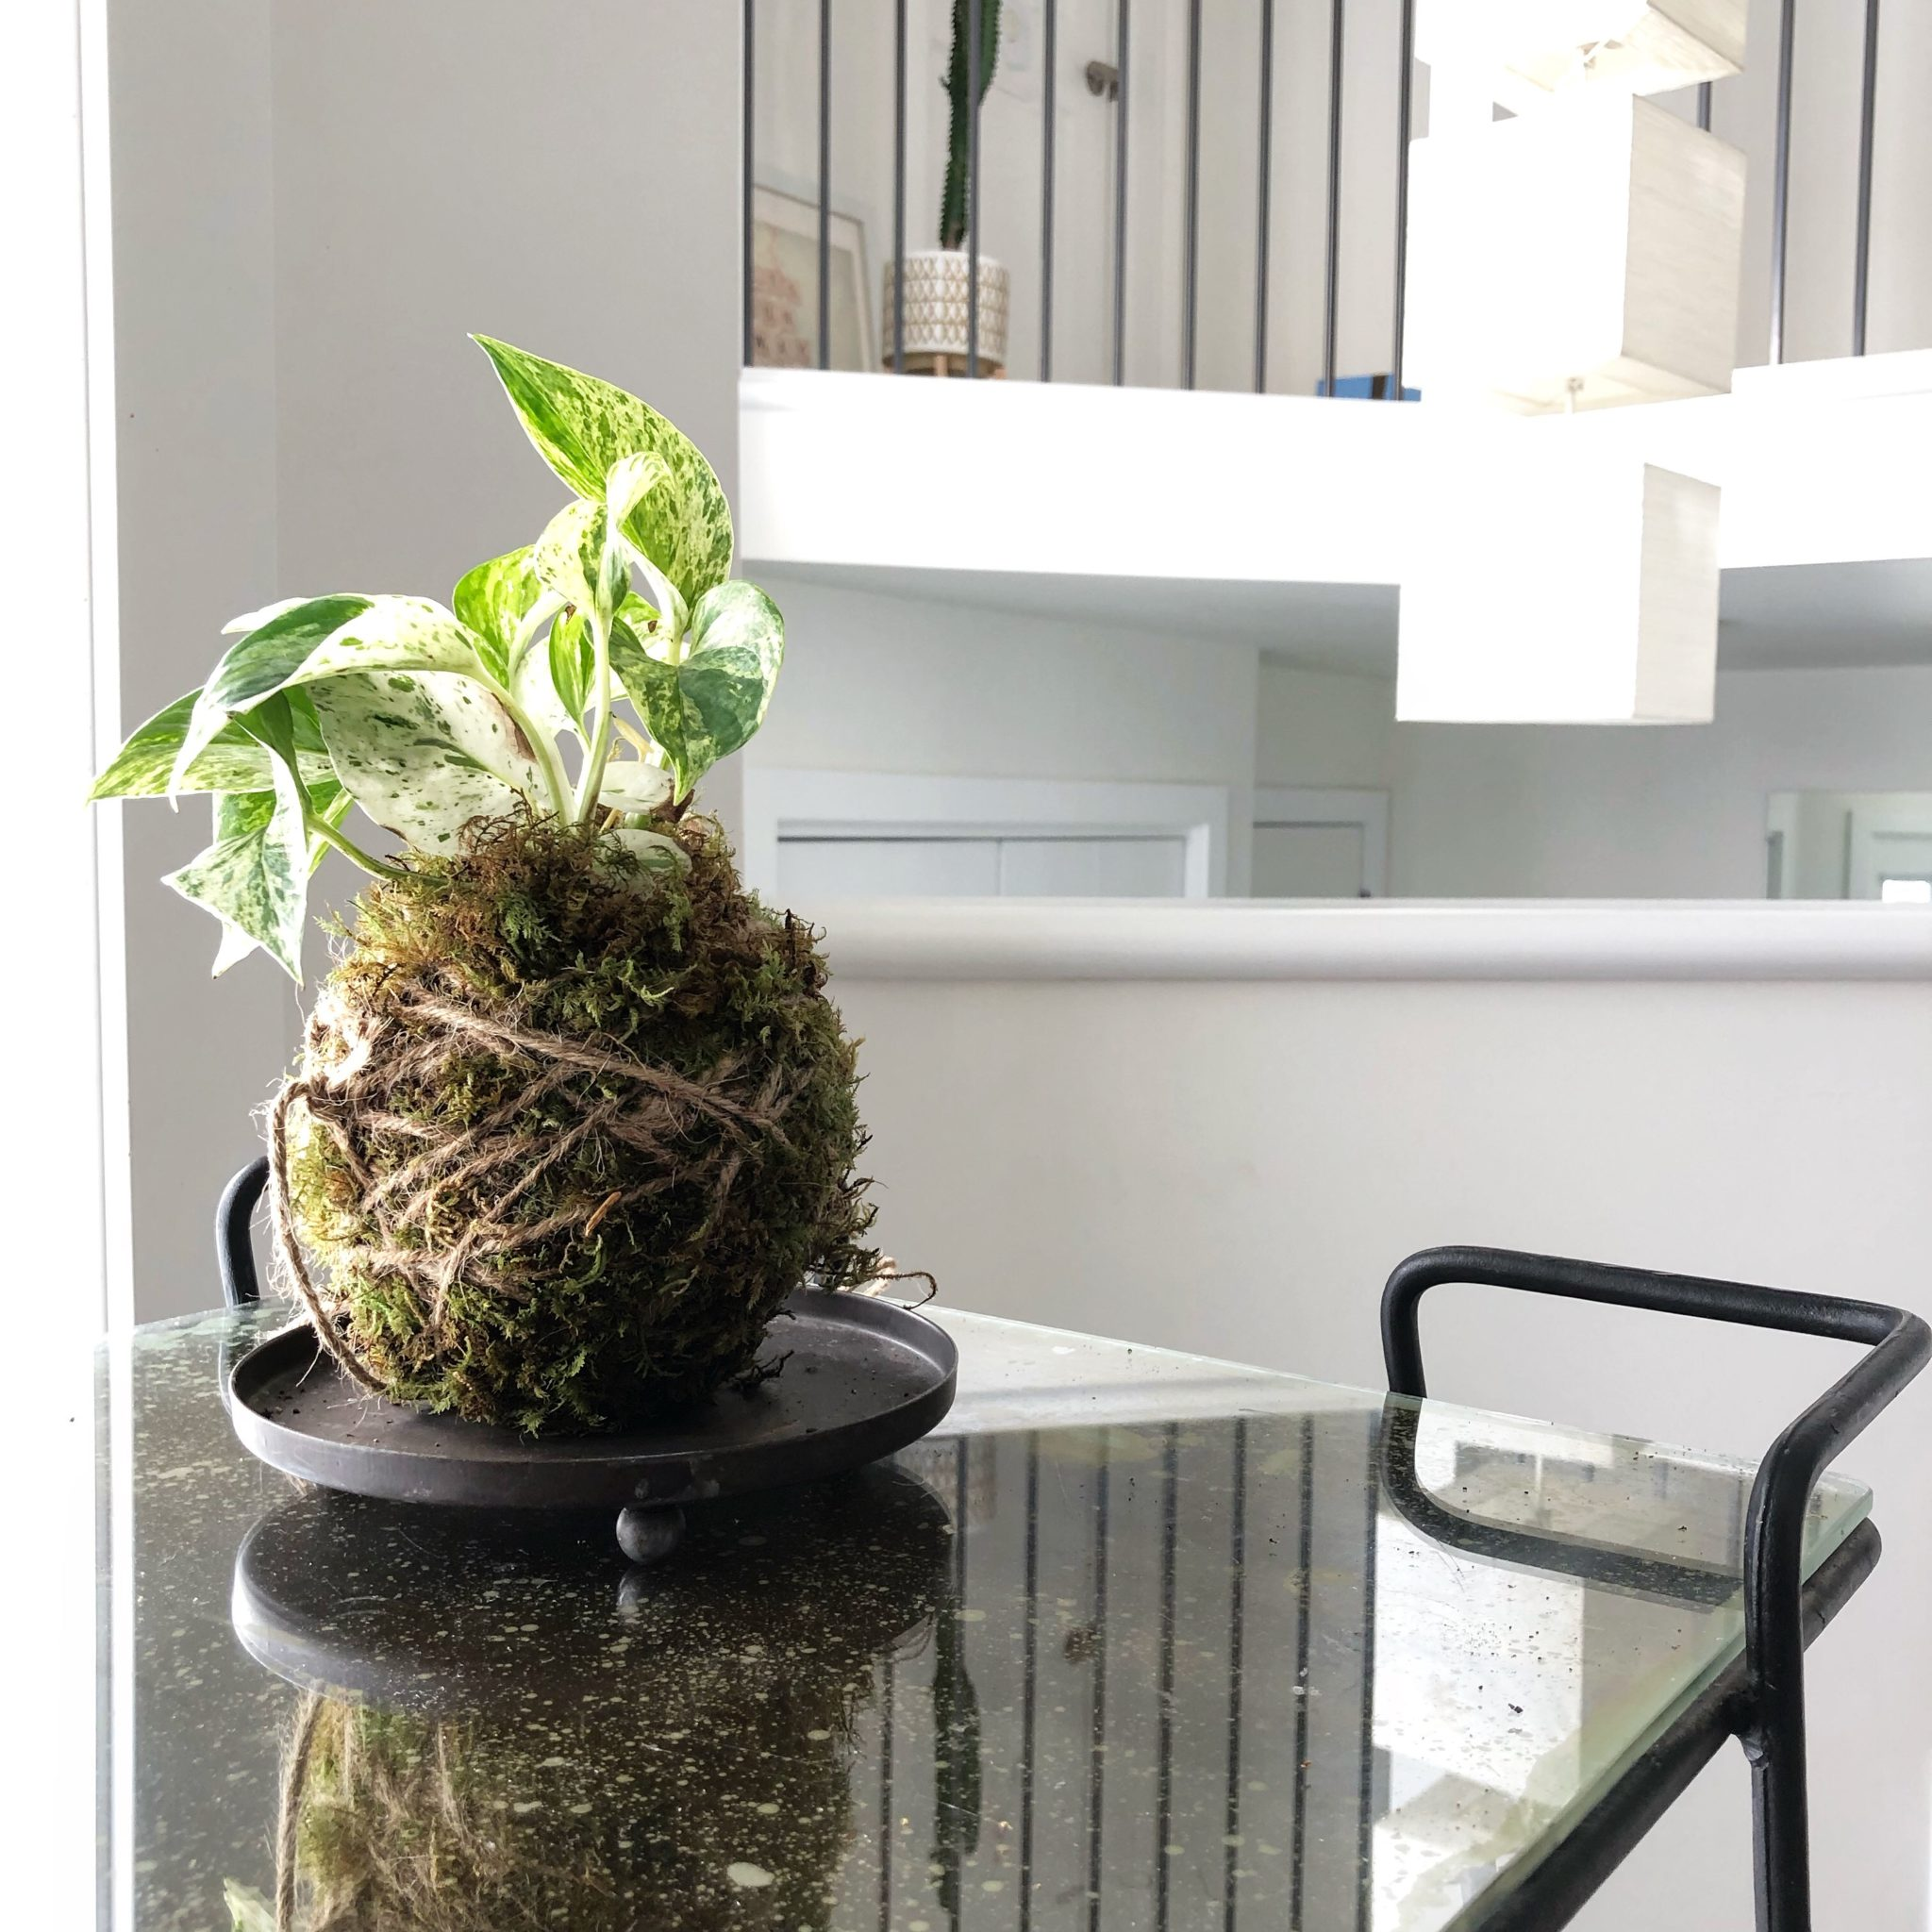 Ways To Decorate With A Kokedama Moss Ball My Tasteful Space